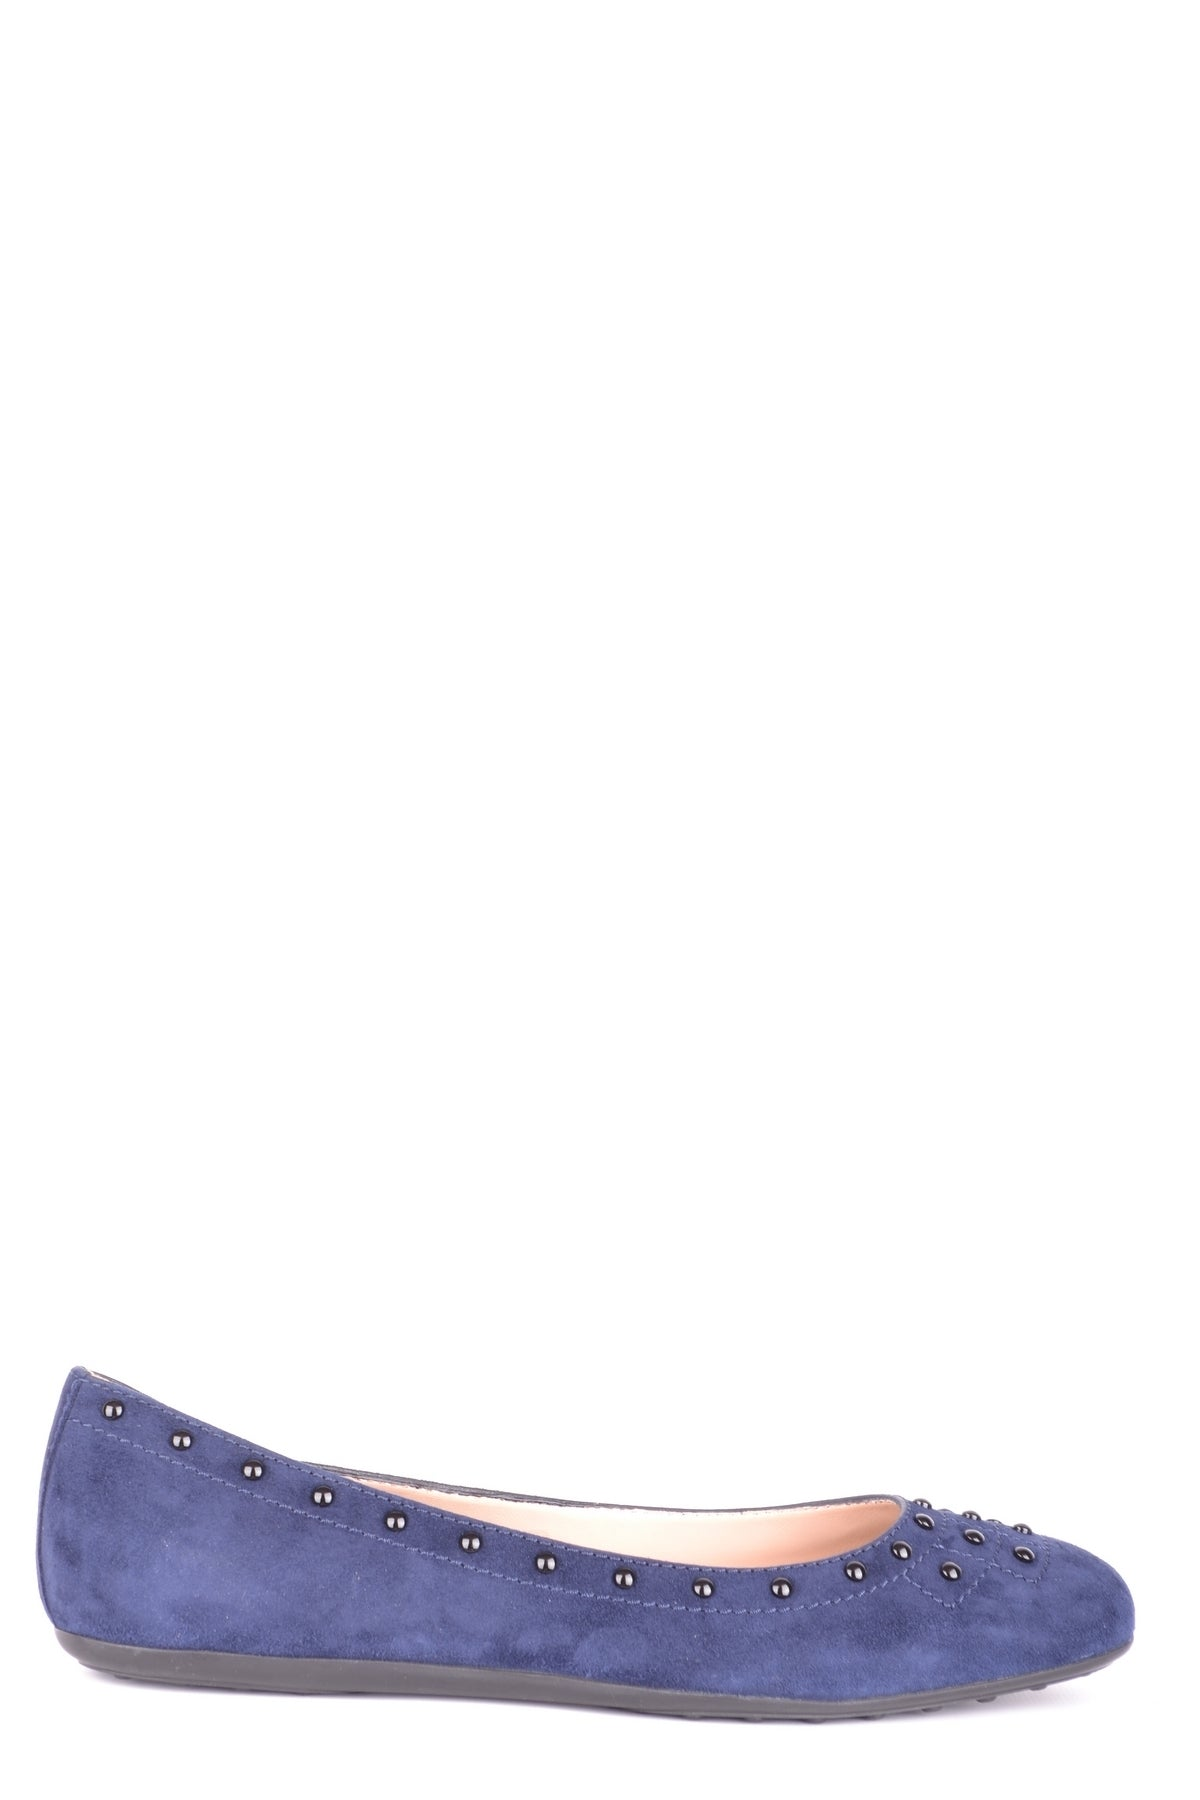 Shoes Tod'S-Ballet flats - WOMAN-36-Product Details Type Of Accessory: ShoesSeason: Spring / SummerTerms: New With LabelMain Color: BlueGender: WomanMade In: ItalyManufacturer Part Number: Xxw71A0Y311Hr0U824Size: EuYear: 2018Composition: Chamois 100%-Keyomi-Sook